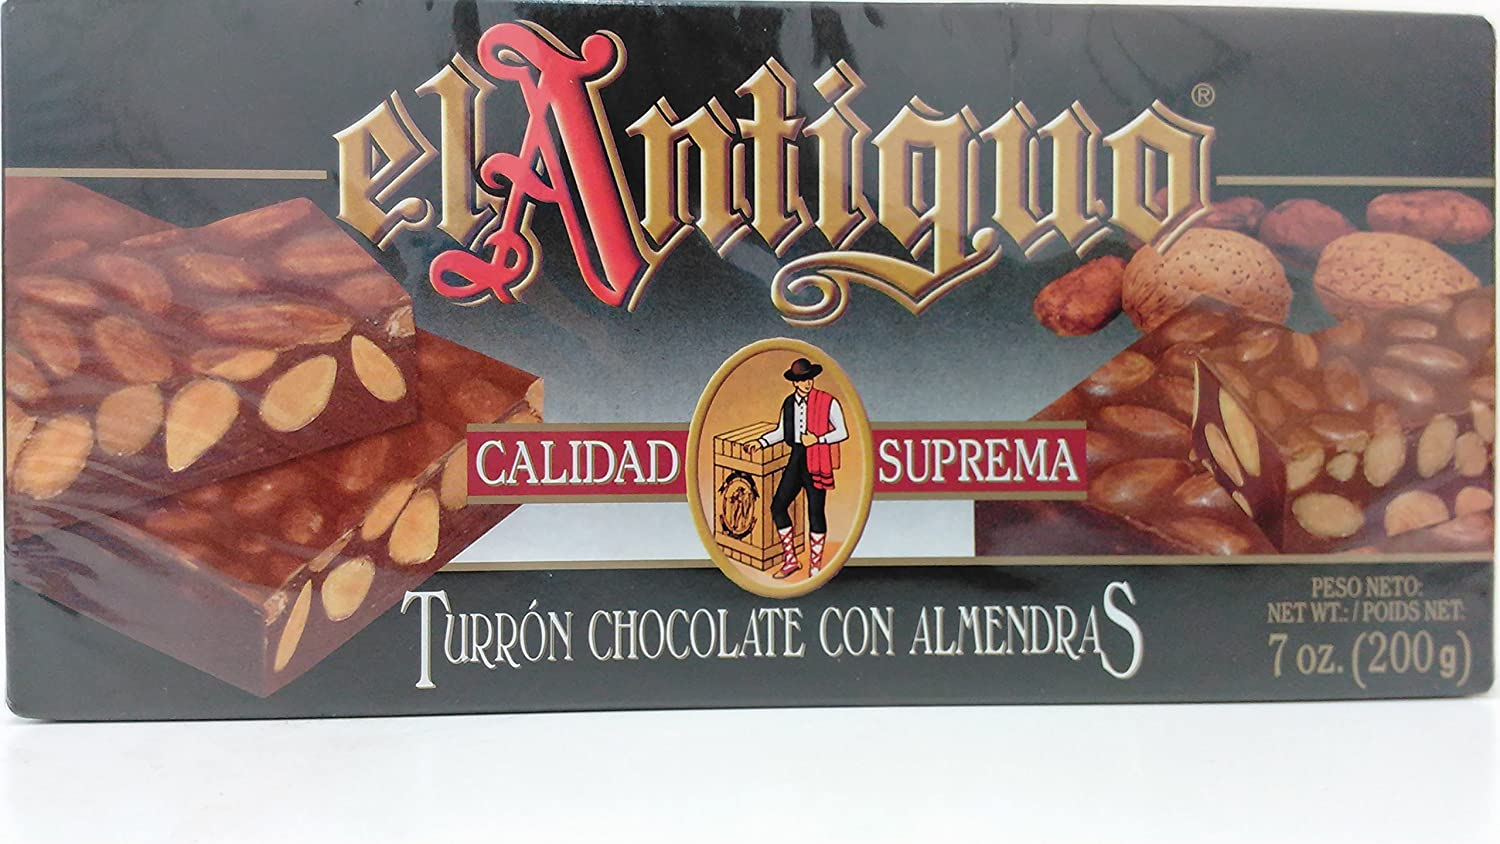 Amazon.com : El Antiguo Calidad Suprema Turron Chocolate Con Almendras - Chocolate Almond Nougat : Grocery & Gourmet Food